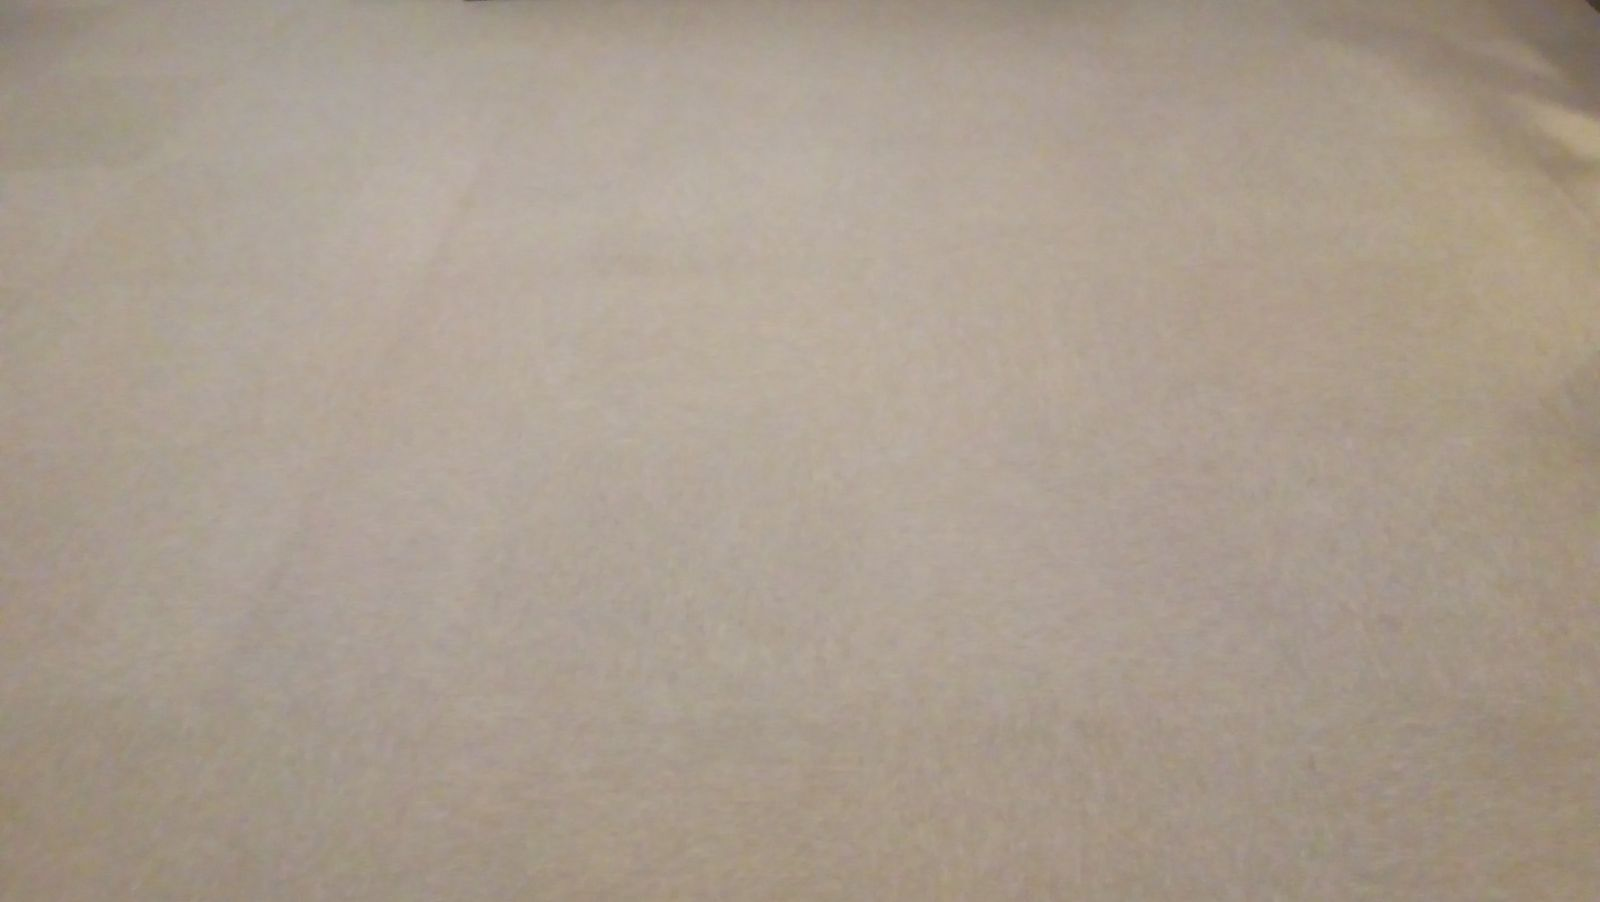 Long Ashton Cricket Club carpet after being cleaned by LDM Services